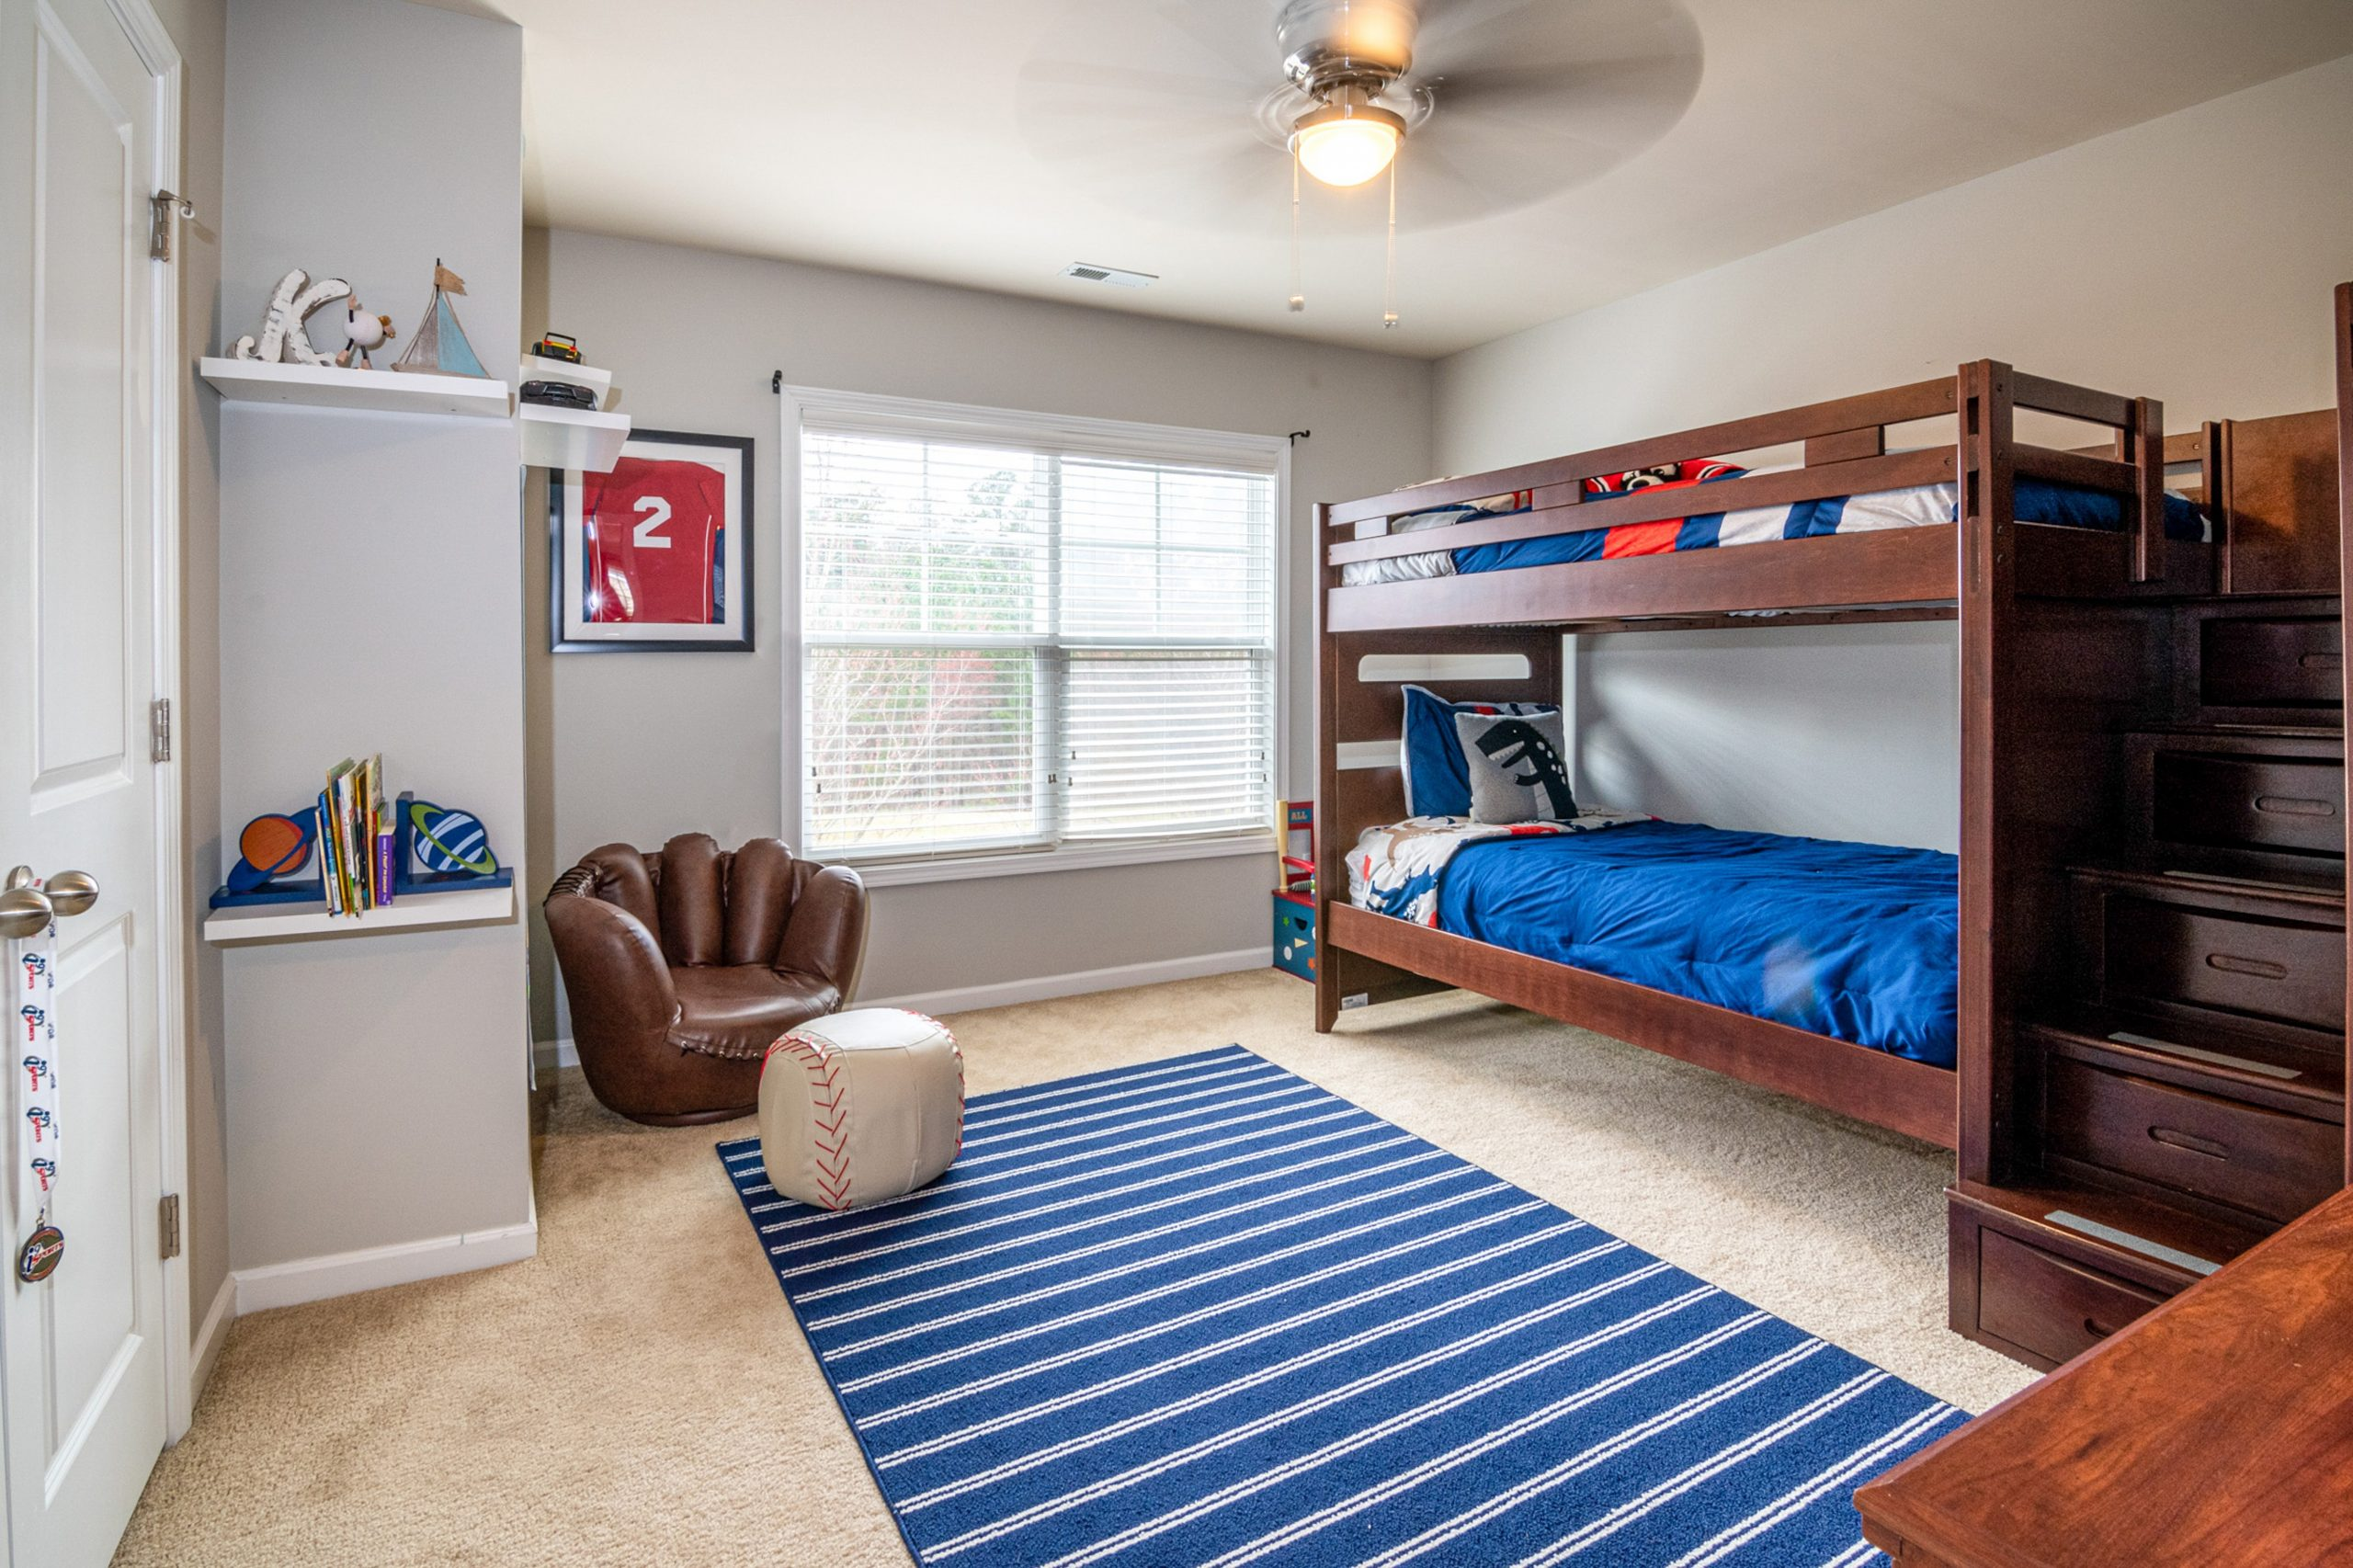 Coolest Bedroom Decor Ideas With Bunk Beds Sippy Cup Mom